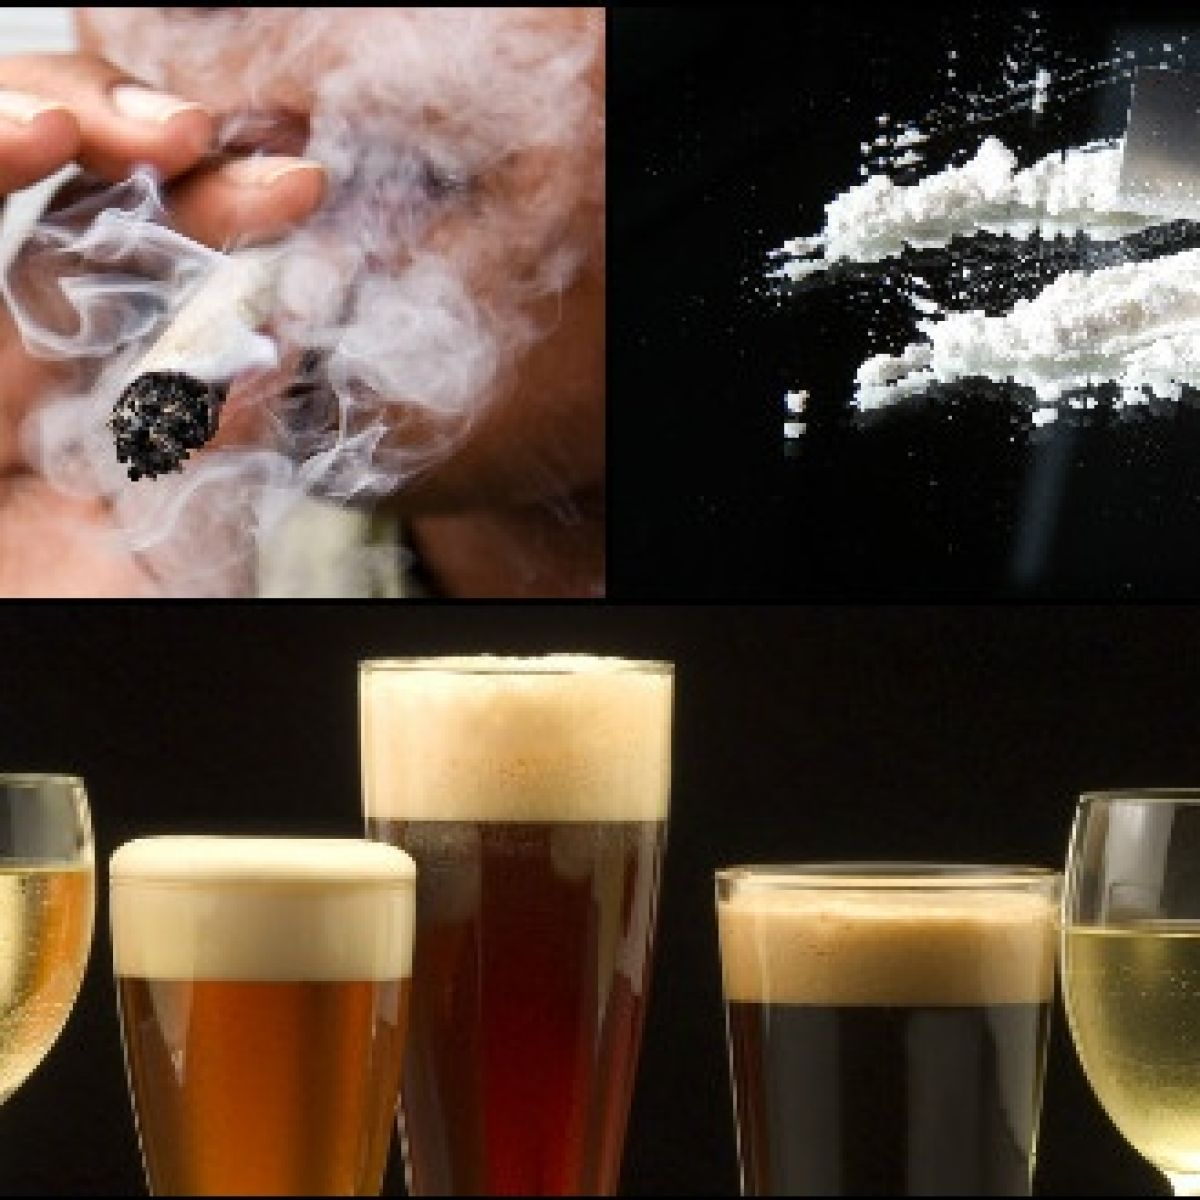 Middle-class drinking epidemic' criticised picture